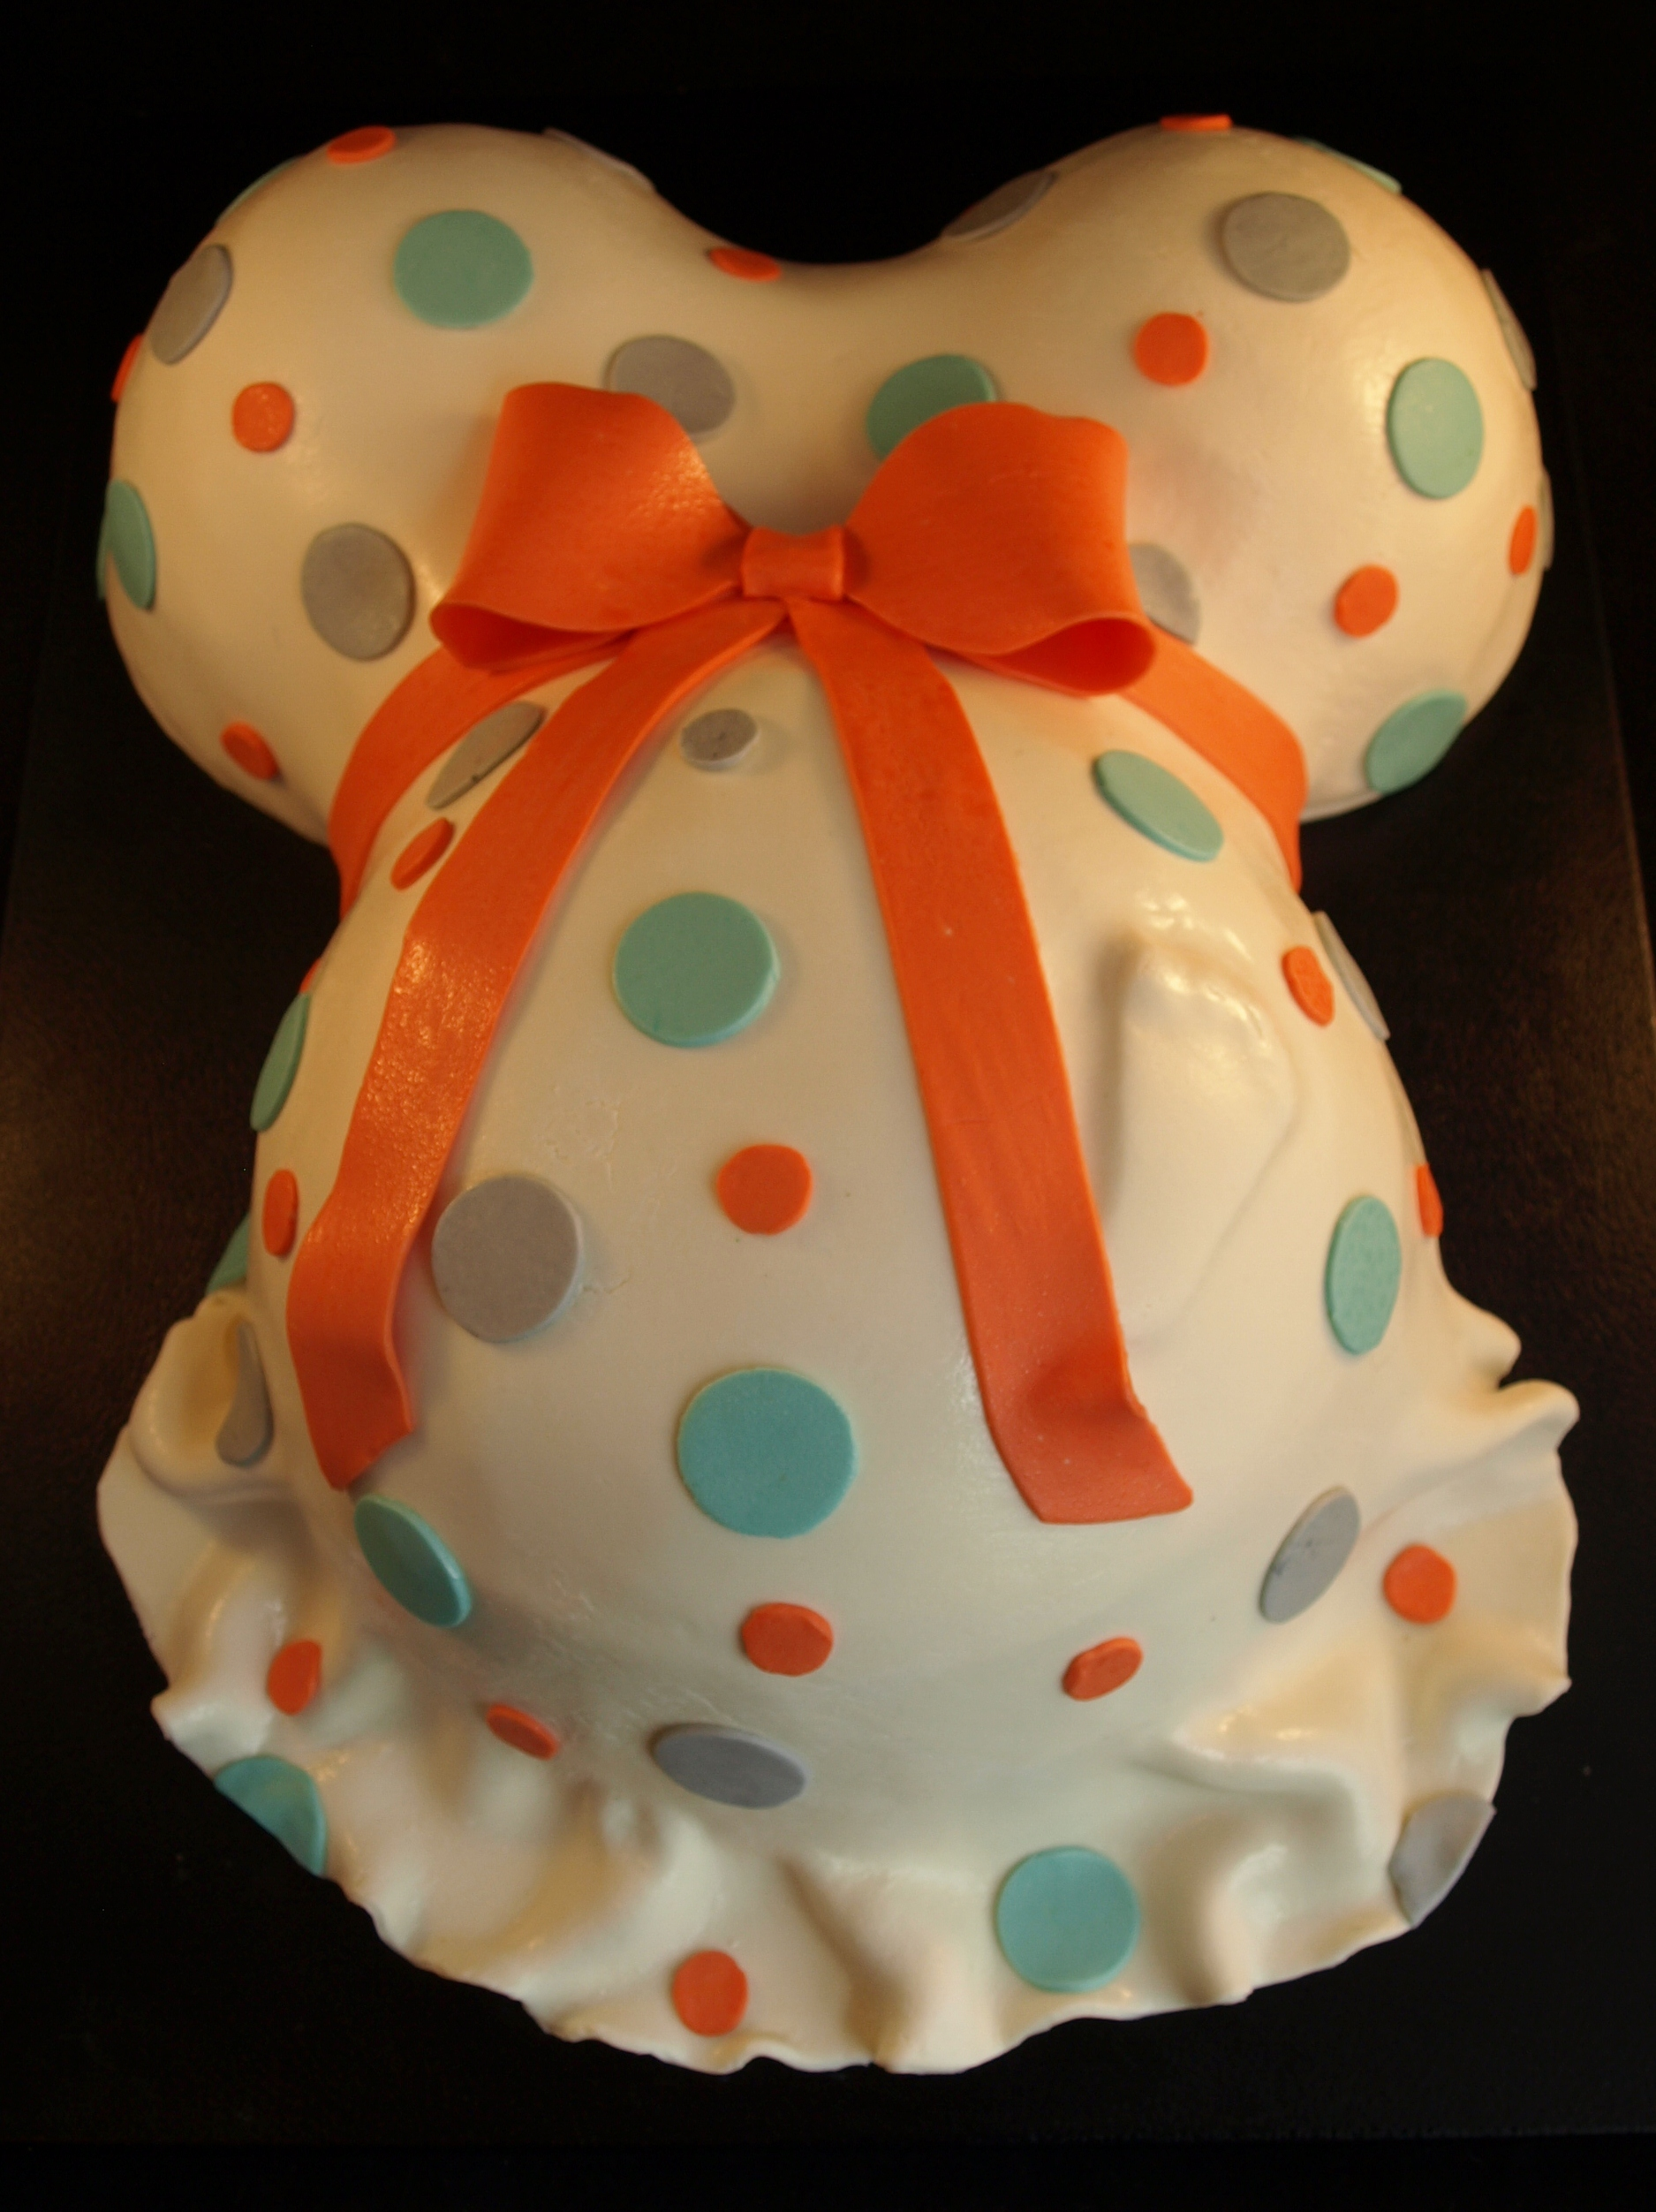 belly cake torso cake baby shower cake pregnant stomach cake